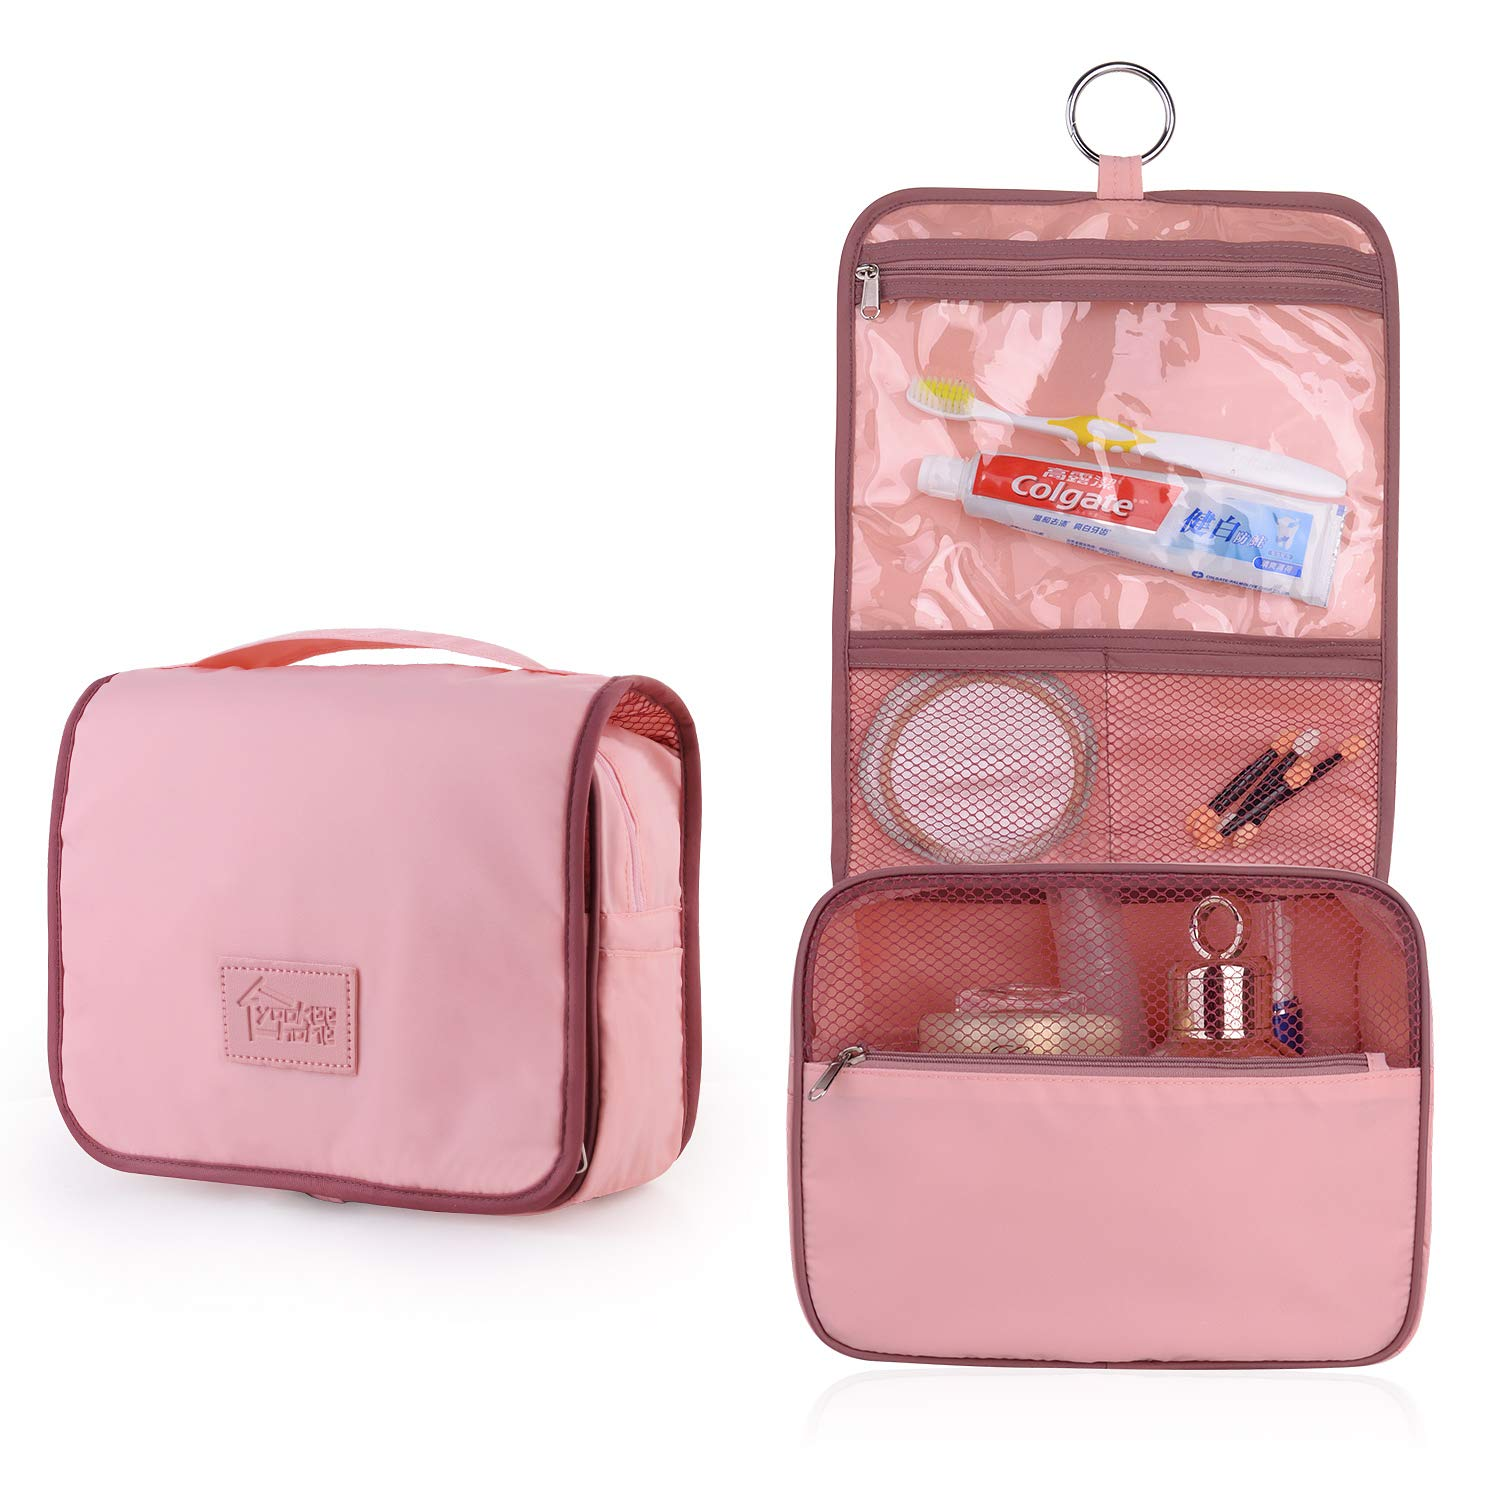 Yookeehome Hanging Toiletry Bag for Women Ring Hanging Hook Multifunction Cosmetic Bag Large Capacity Portable Travel Makeup Pouch Waterproof Various Compartments Pink